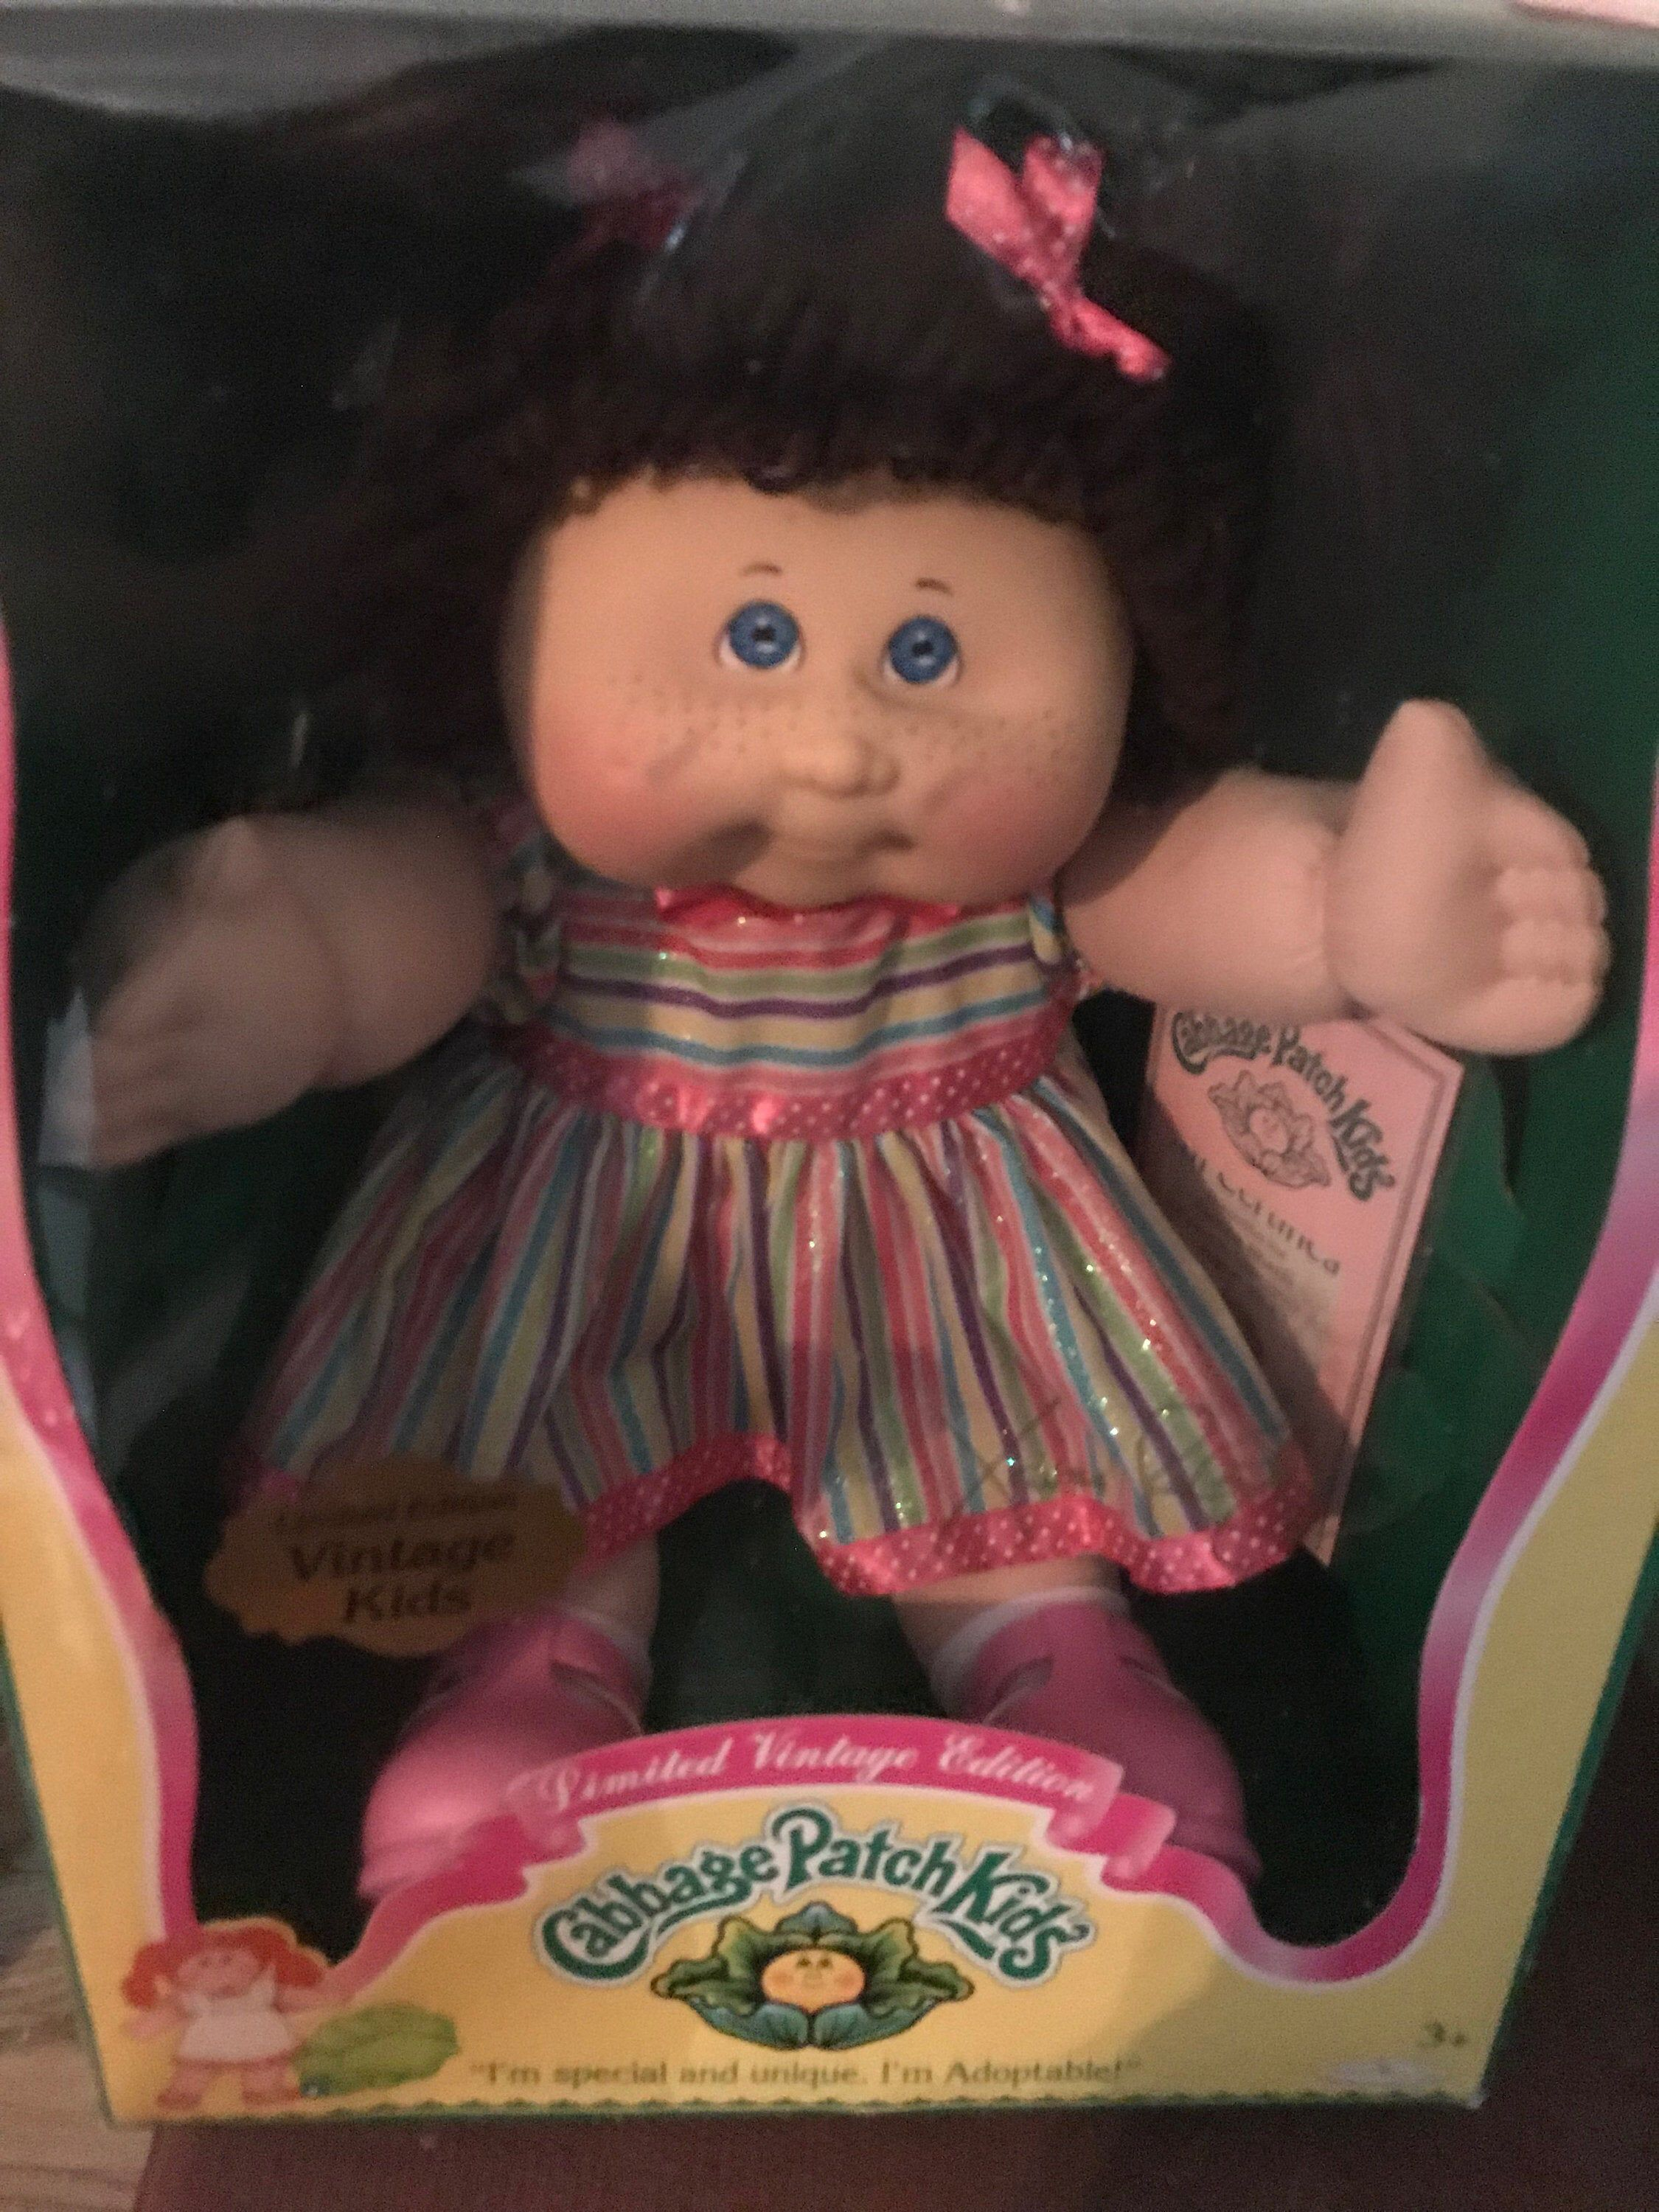 Cabbage Patch Kids Doll Xavier Roberts Edition Limited Etsy Cabbage Patch Kids Dolls Cabbage Patch Dolls Cabbage Patch Kids